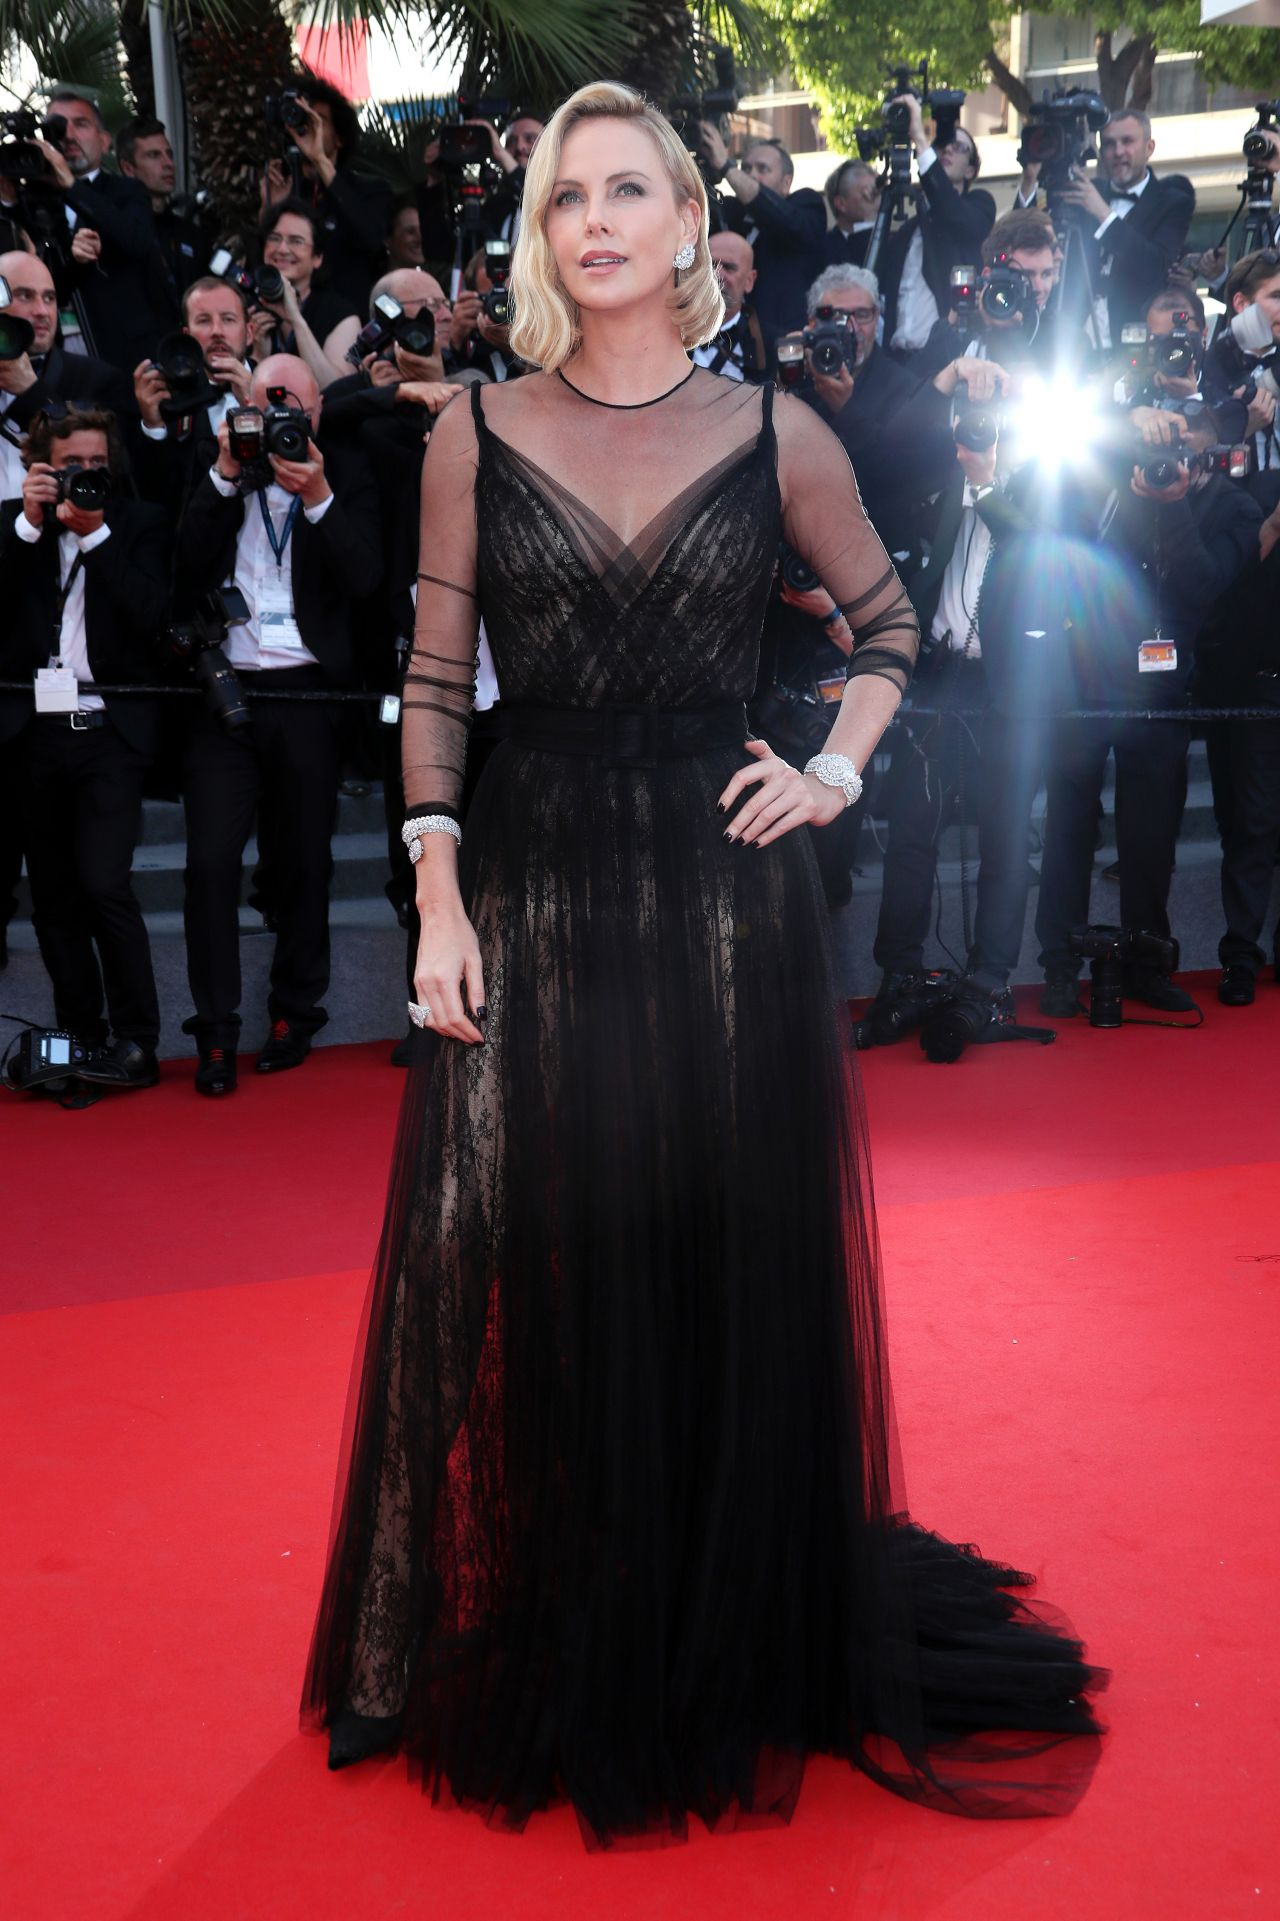 Cannes 2017 Heidi Klum Continues A Cannes Tradition In